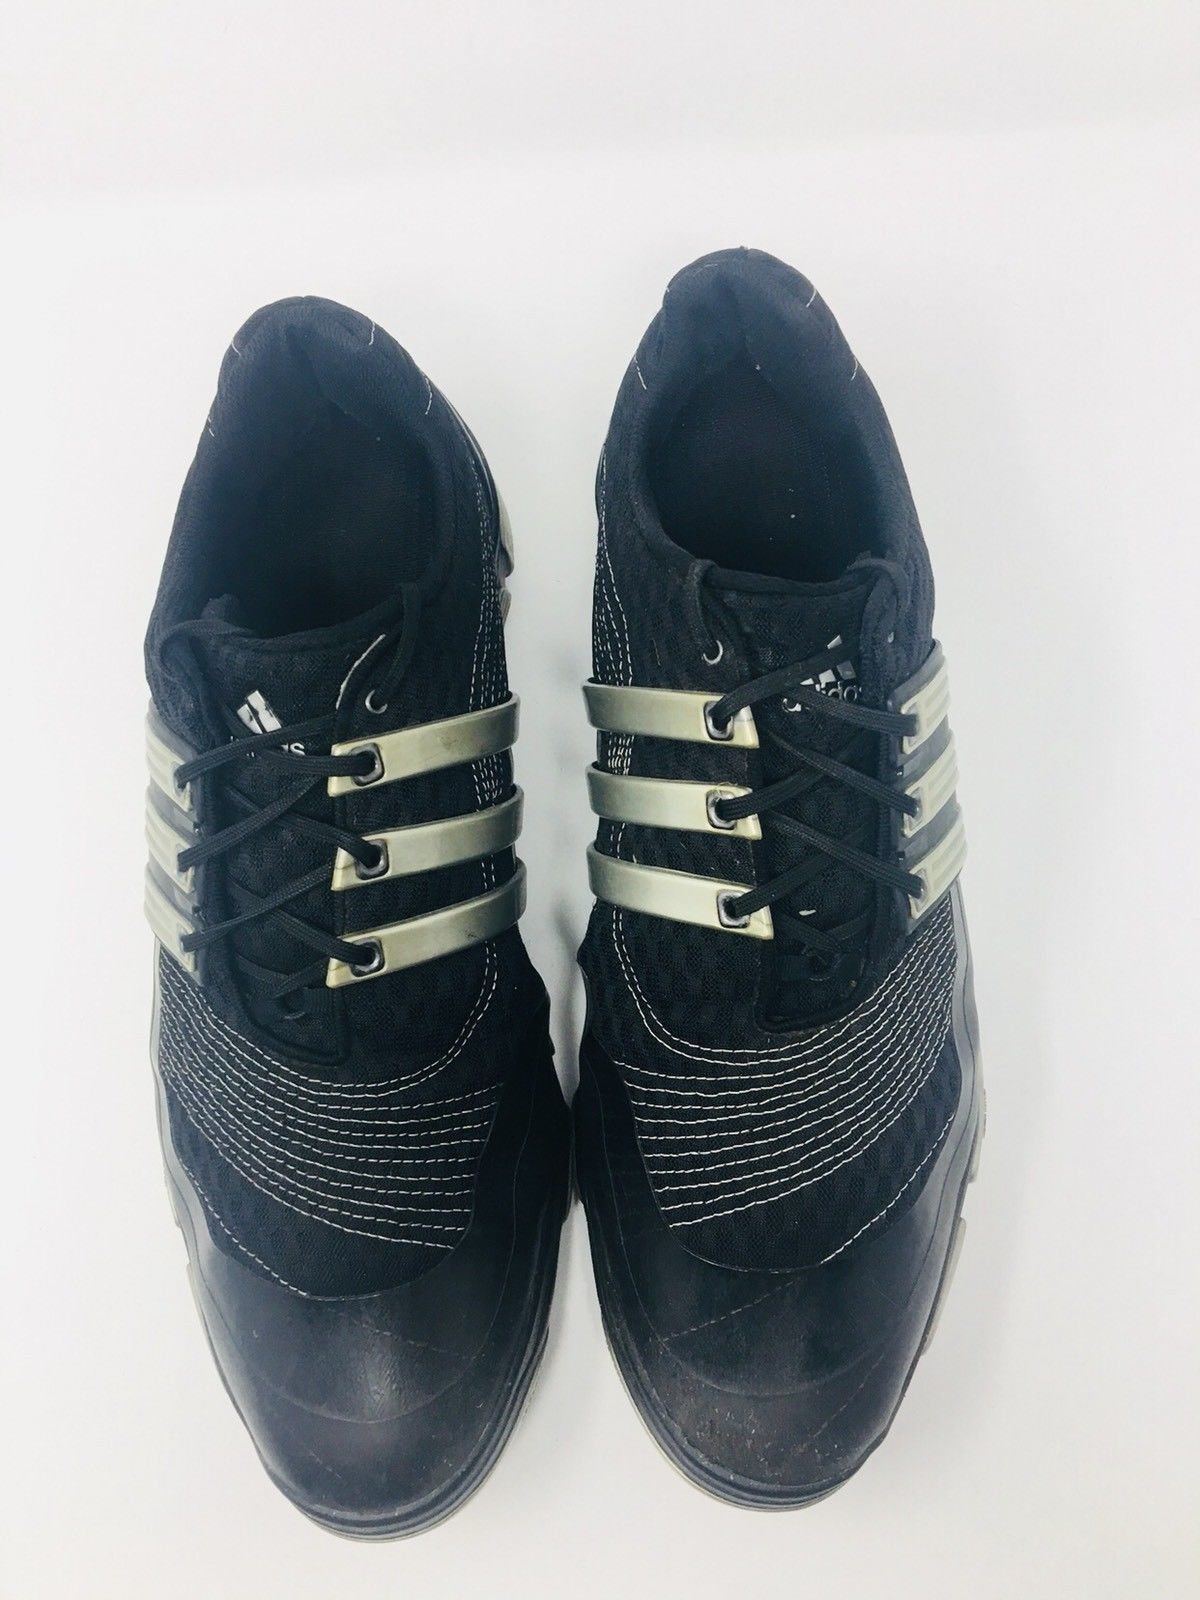 lowest price d0c9b b004b ... Adidas Tour 360 4.0 Black Leather Lace Up Golf Shoes Cleats Men s Size  12 M ...